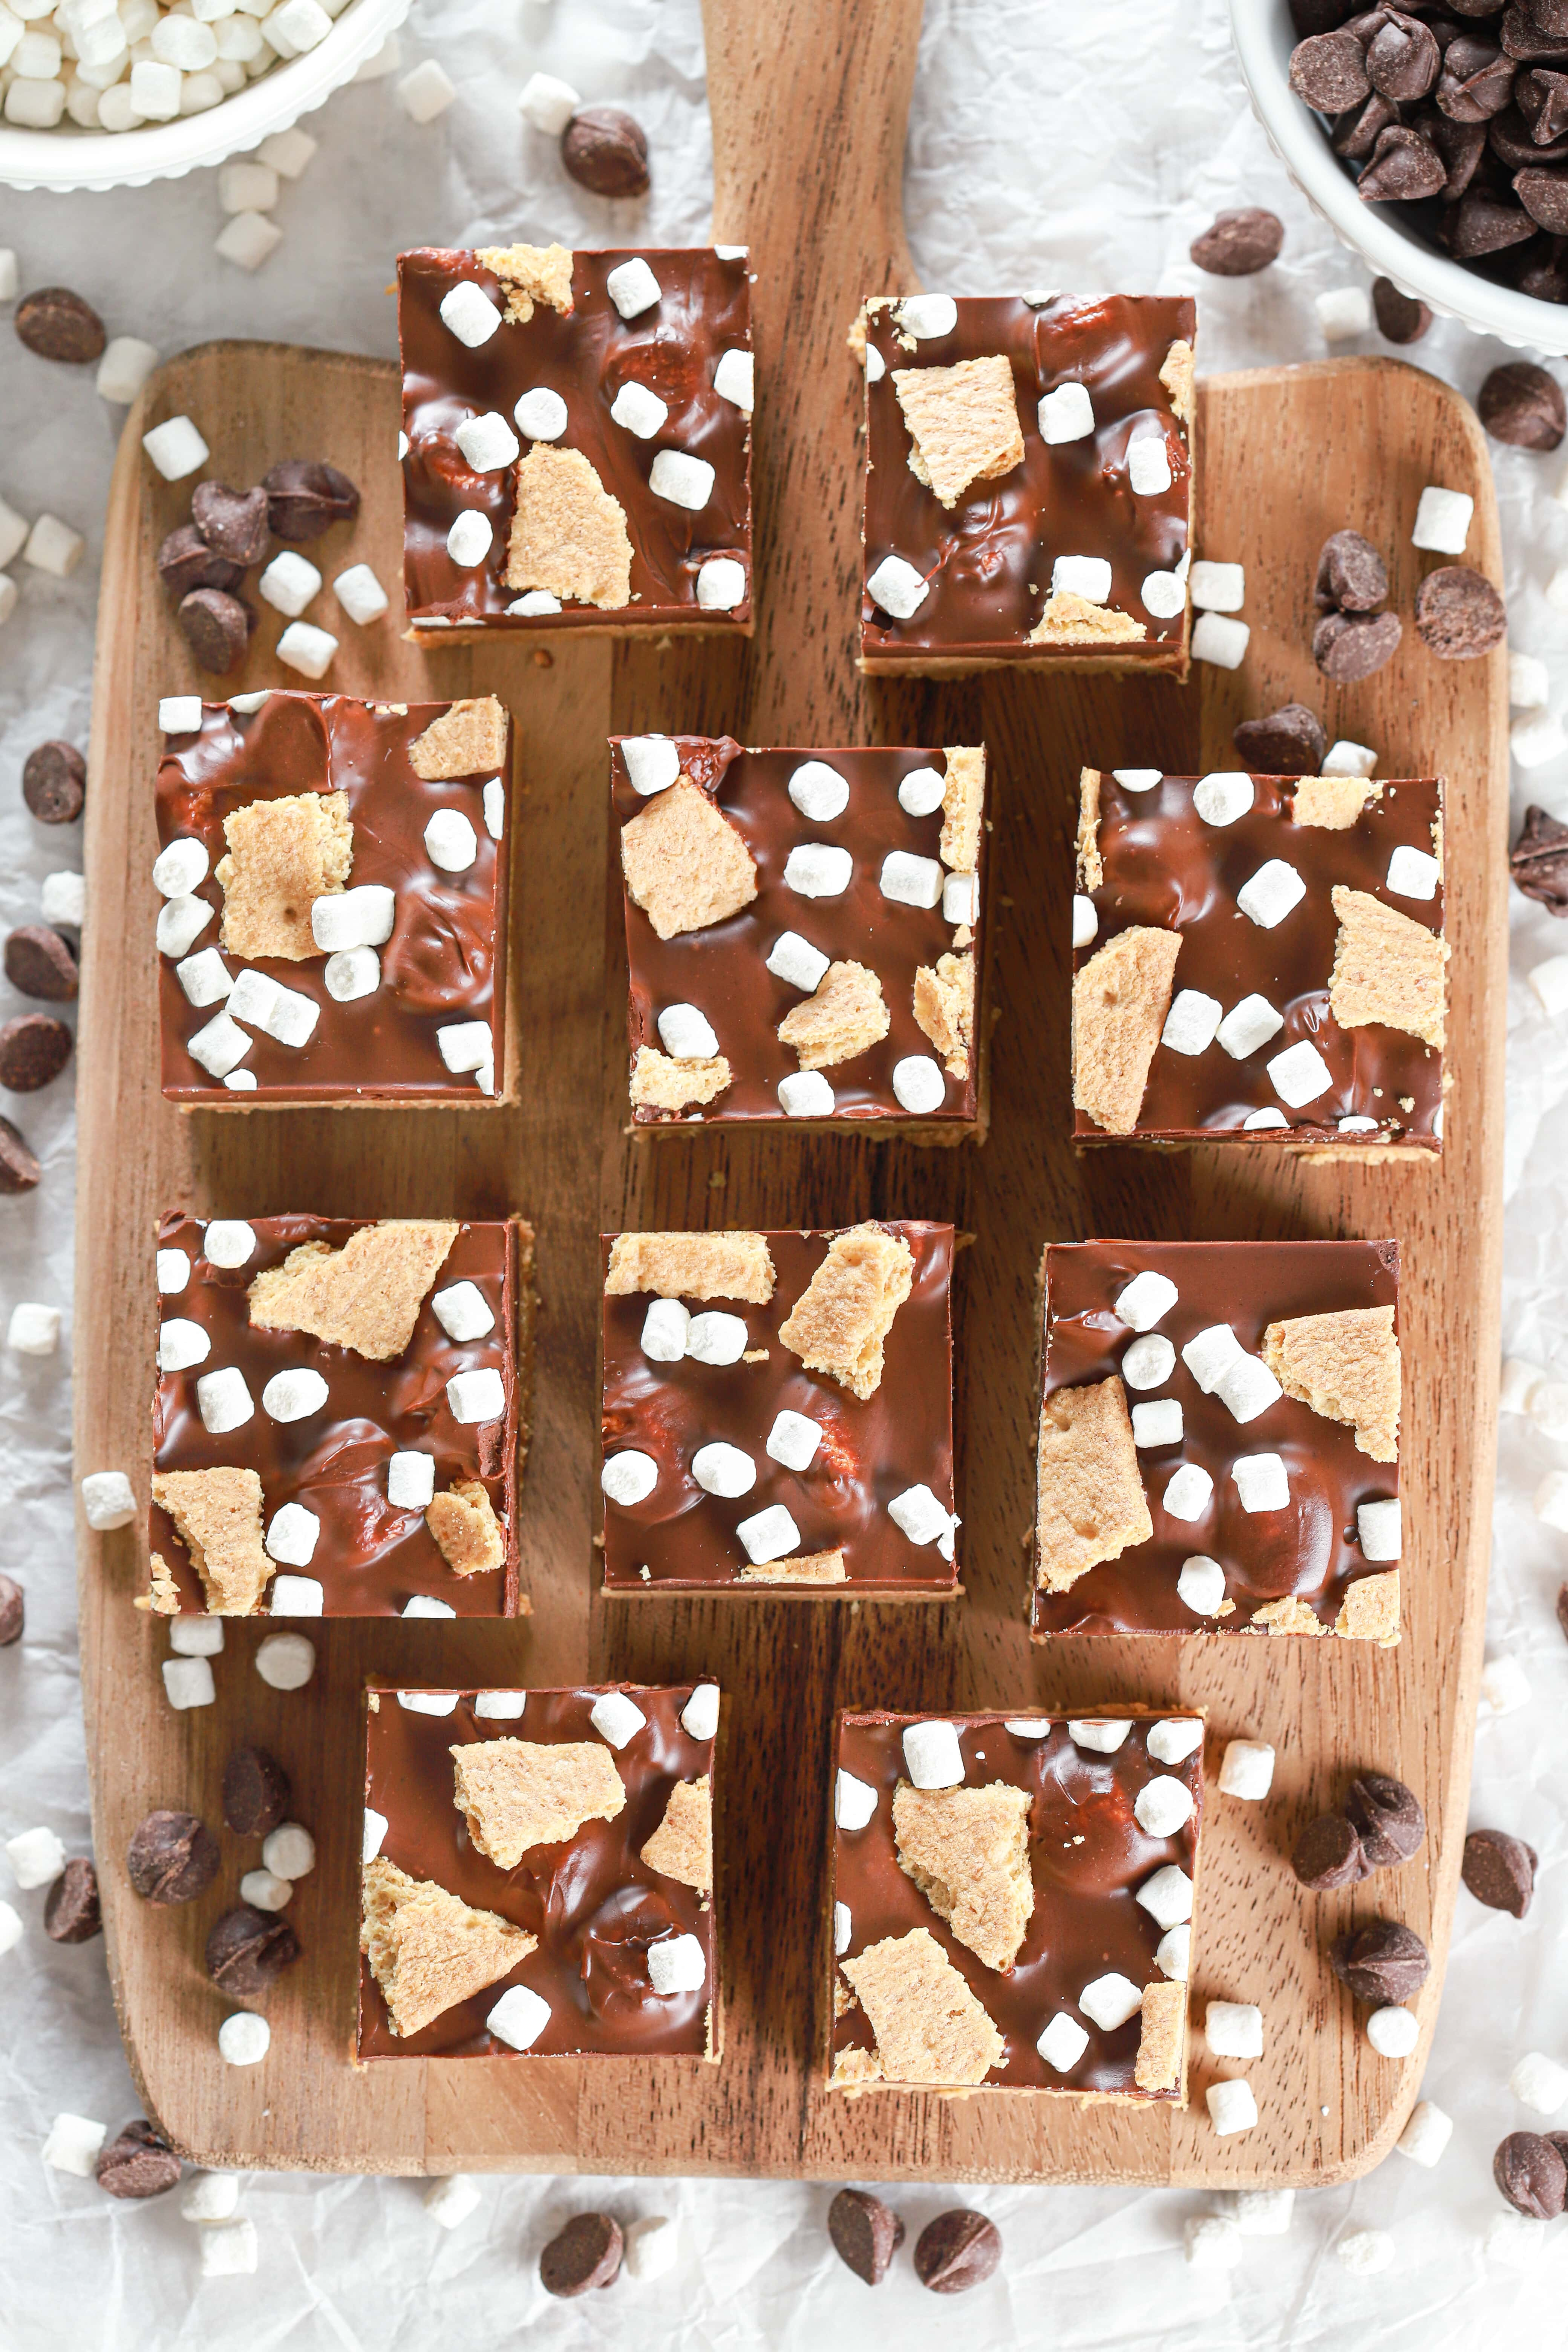 Overhead view of a batch of no bake peanut butter smores bars on a wooden cutting board.